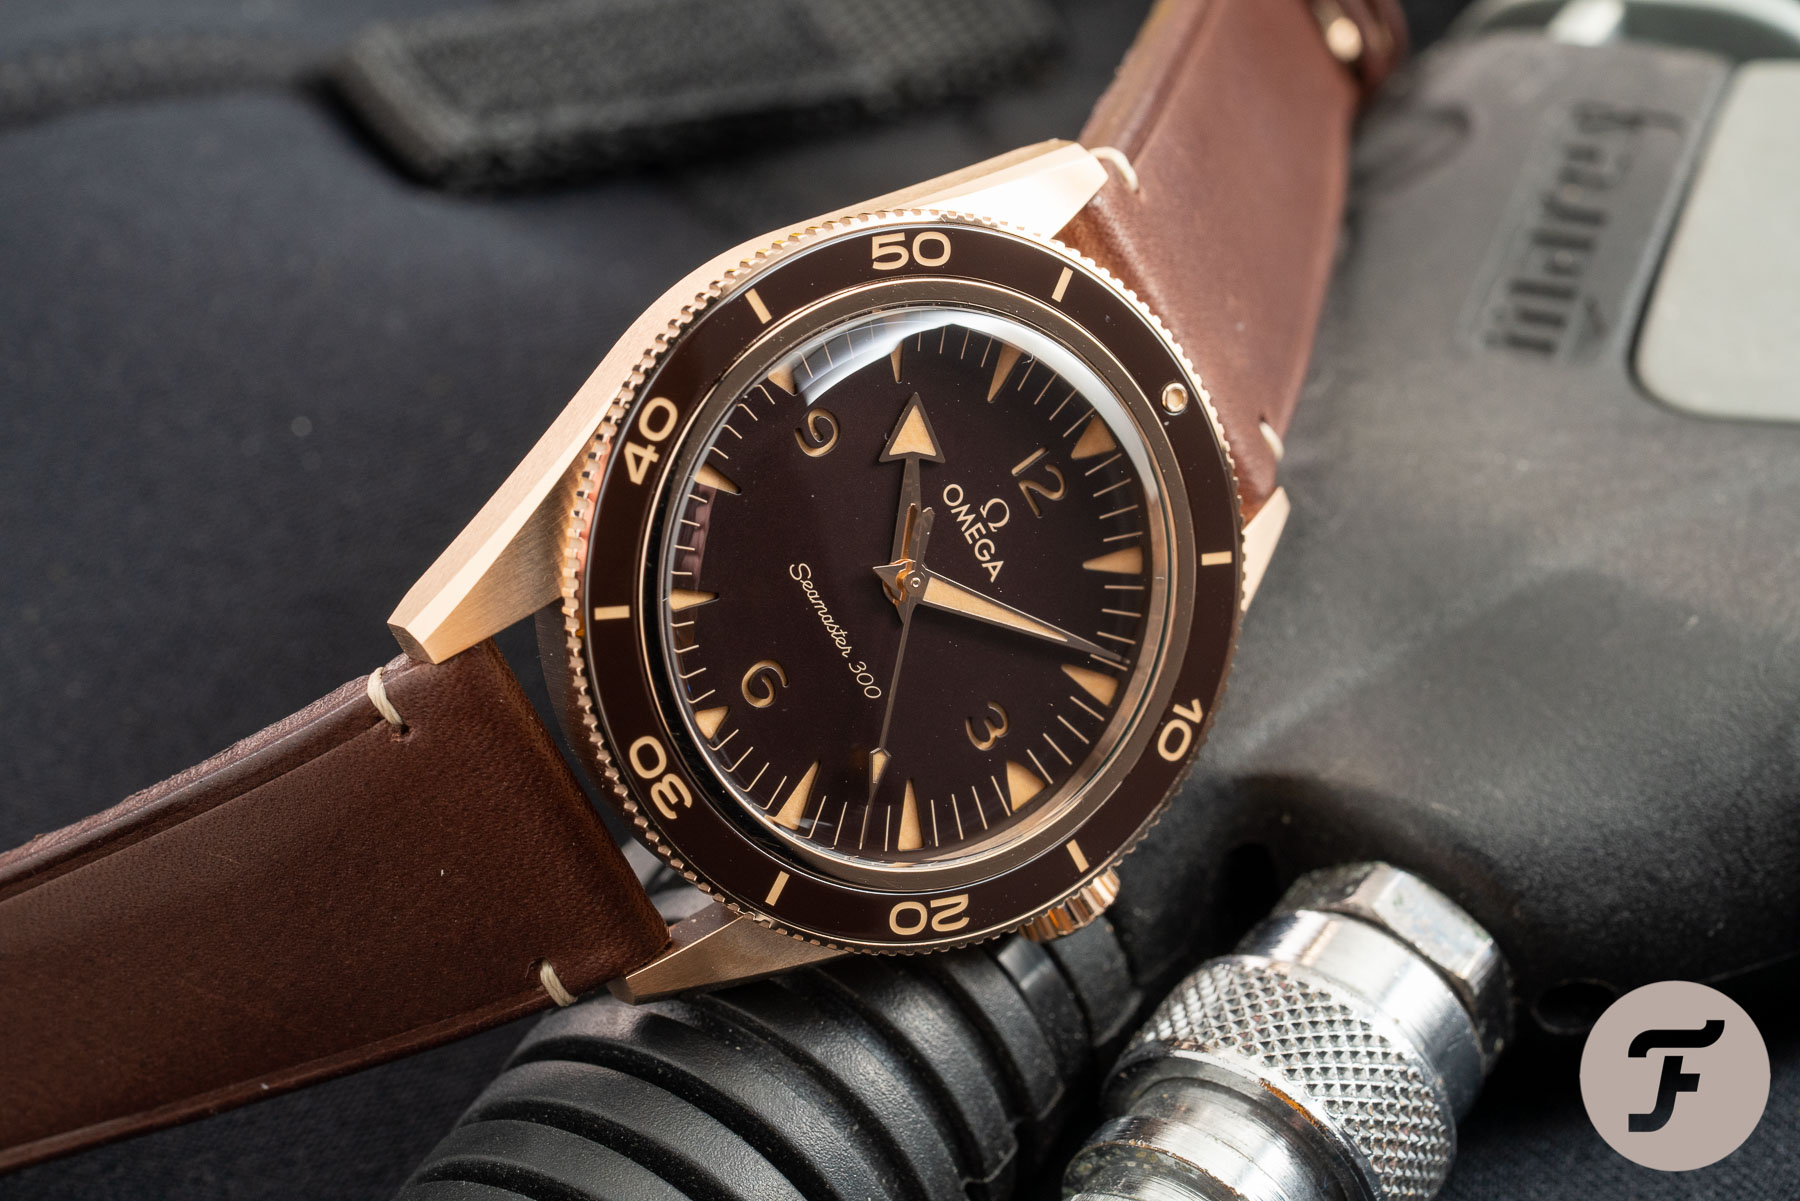 How Watches Work – It's Alloys Galore Ranging From The Obvious To The Obscure